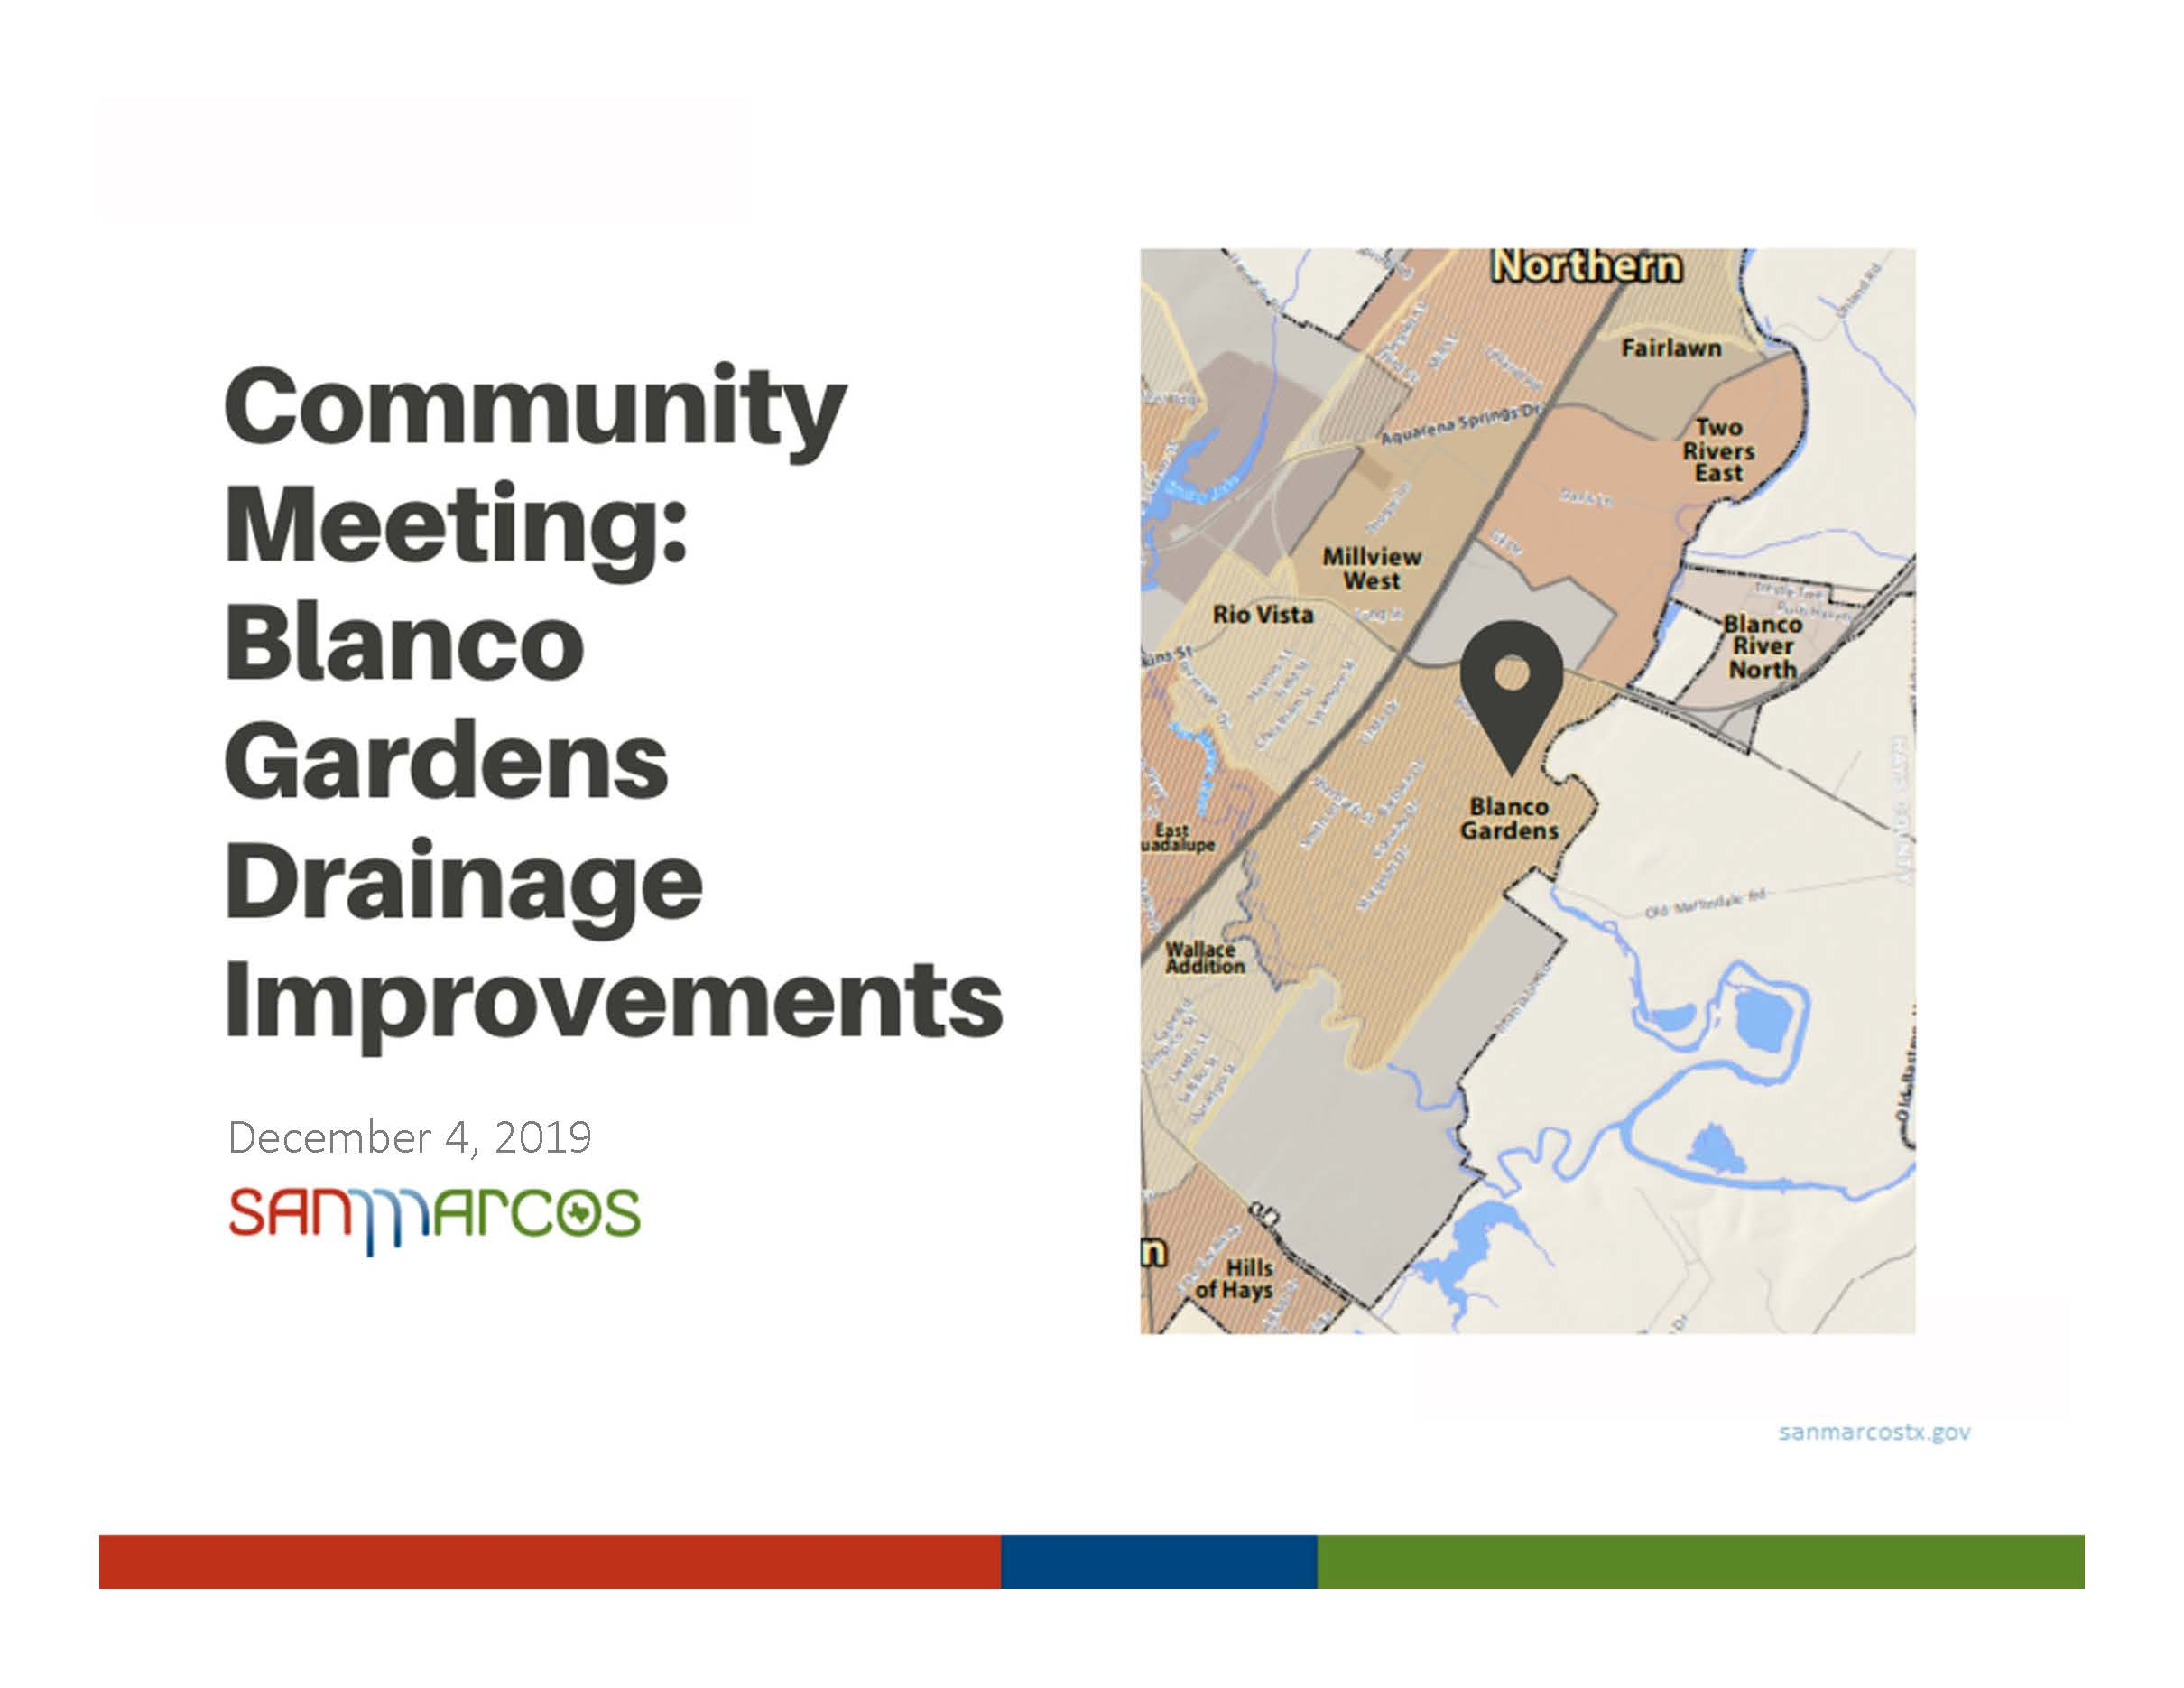 December 4, 2019 Community Meeting: Blanco Gardens Drainage Improvements Presentation (PDF)